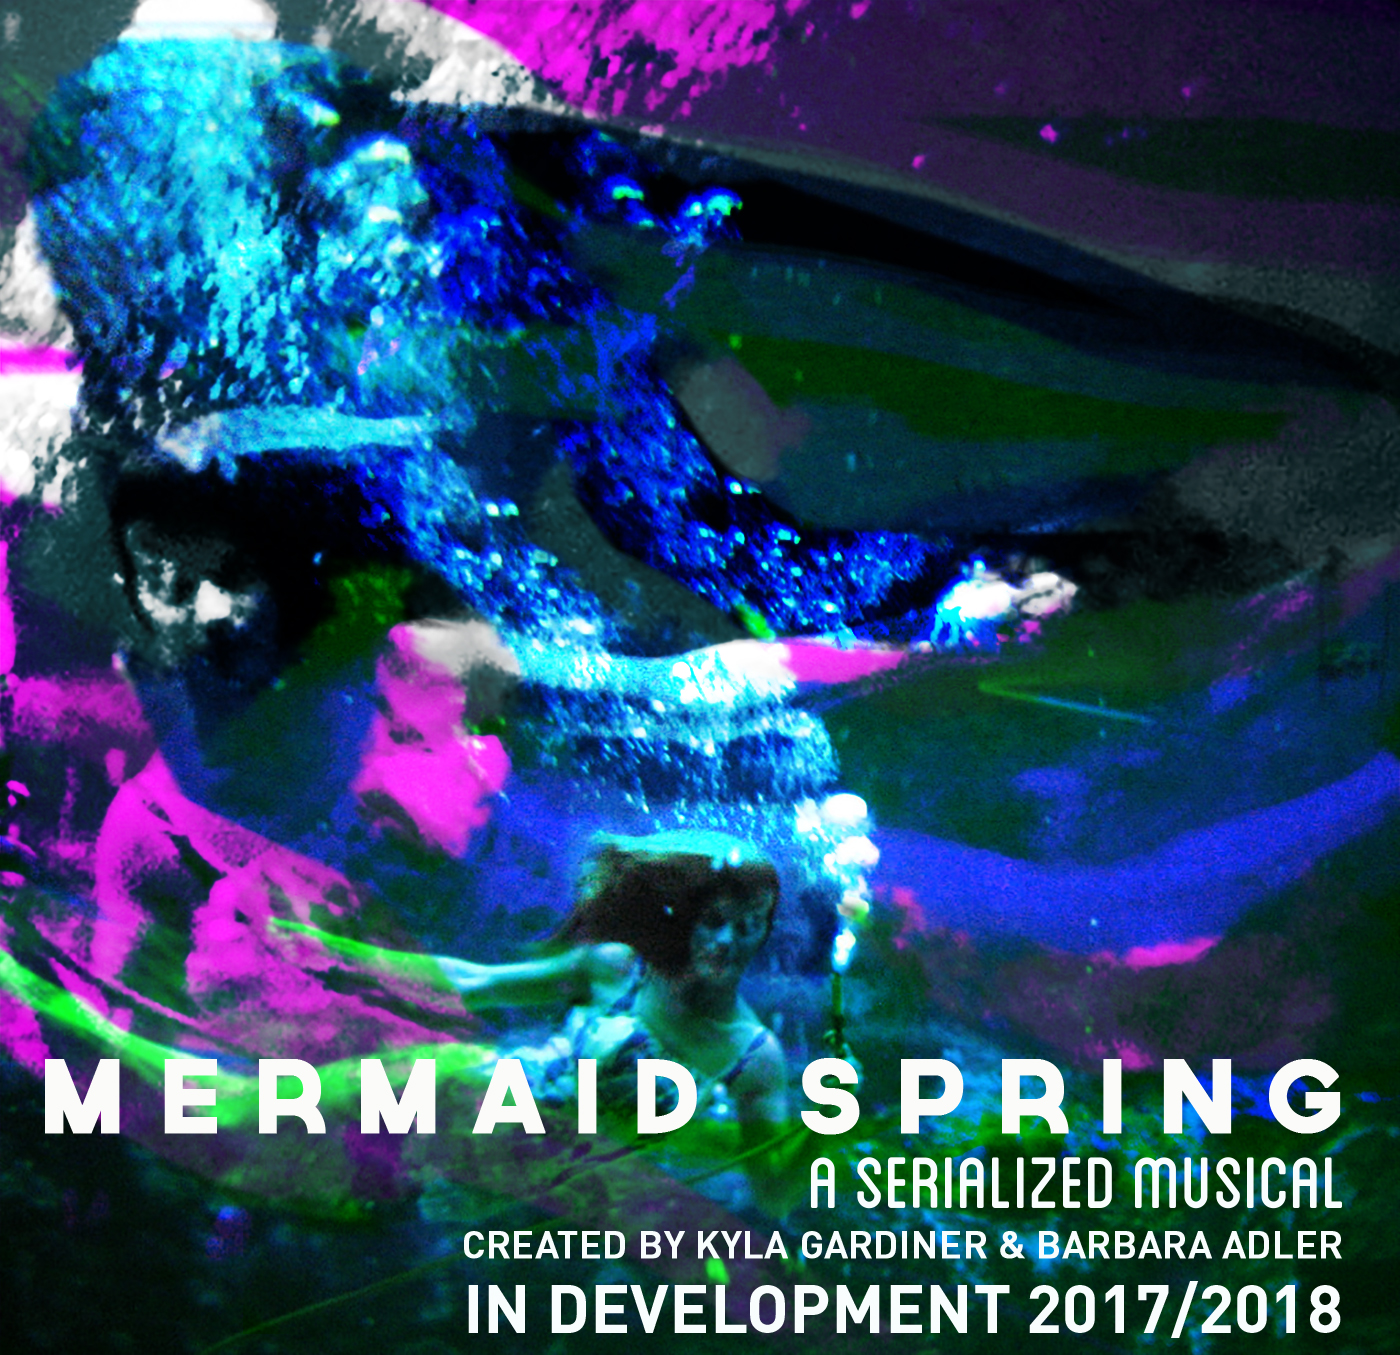 MERMAID SPRING - Announcing a new collaboration by Kyla Gardiner and Barbara AdlerMermaid Spring is a new serialized musical in development by designer/performance maker Kyla Gardiner and writer/composer Barbara Adler. The project is inspired by Florida's Weeki Wachee State Springs Park where since 1947, women have performed live mermaid shows in a freshwater spring to audiences gathered in a glass-fronted underwater theatre.Our starting point is the defiantly kitschy history of this place, but mermaids matter now. Look up